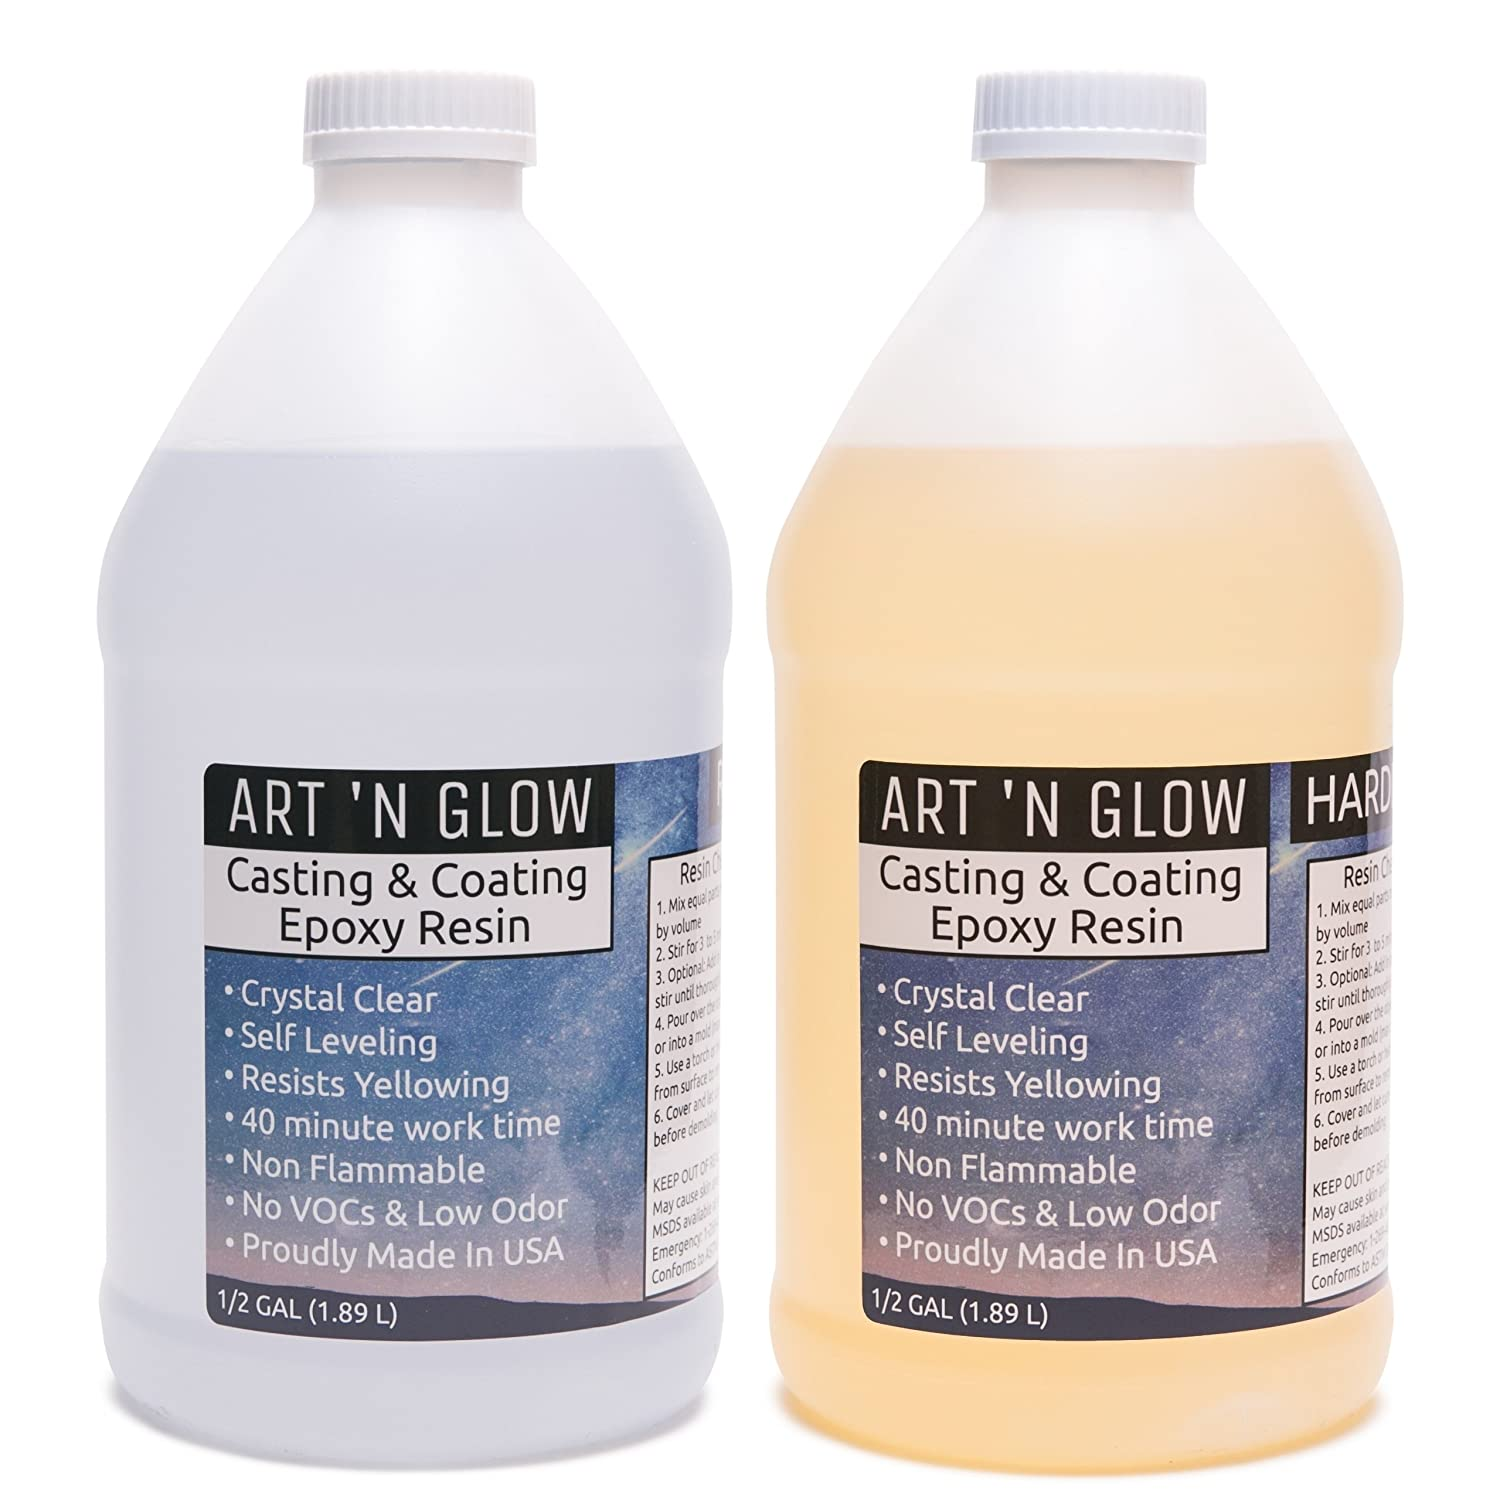 Clear Casting And Coating Epoxy Resin - 1 Gallon Kit Art ' N Glow 4336846261